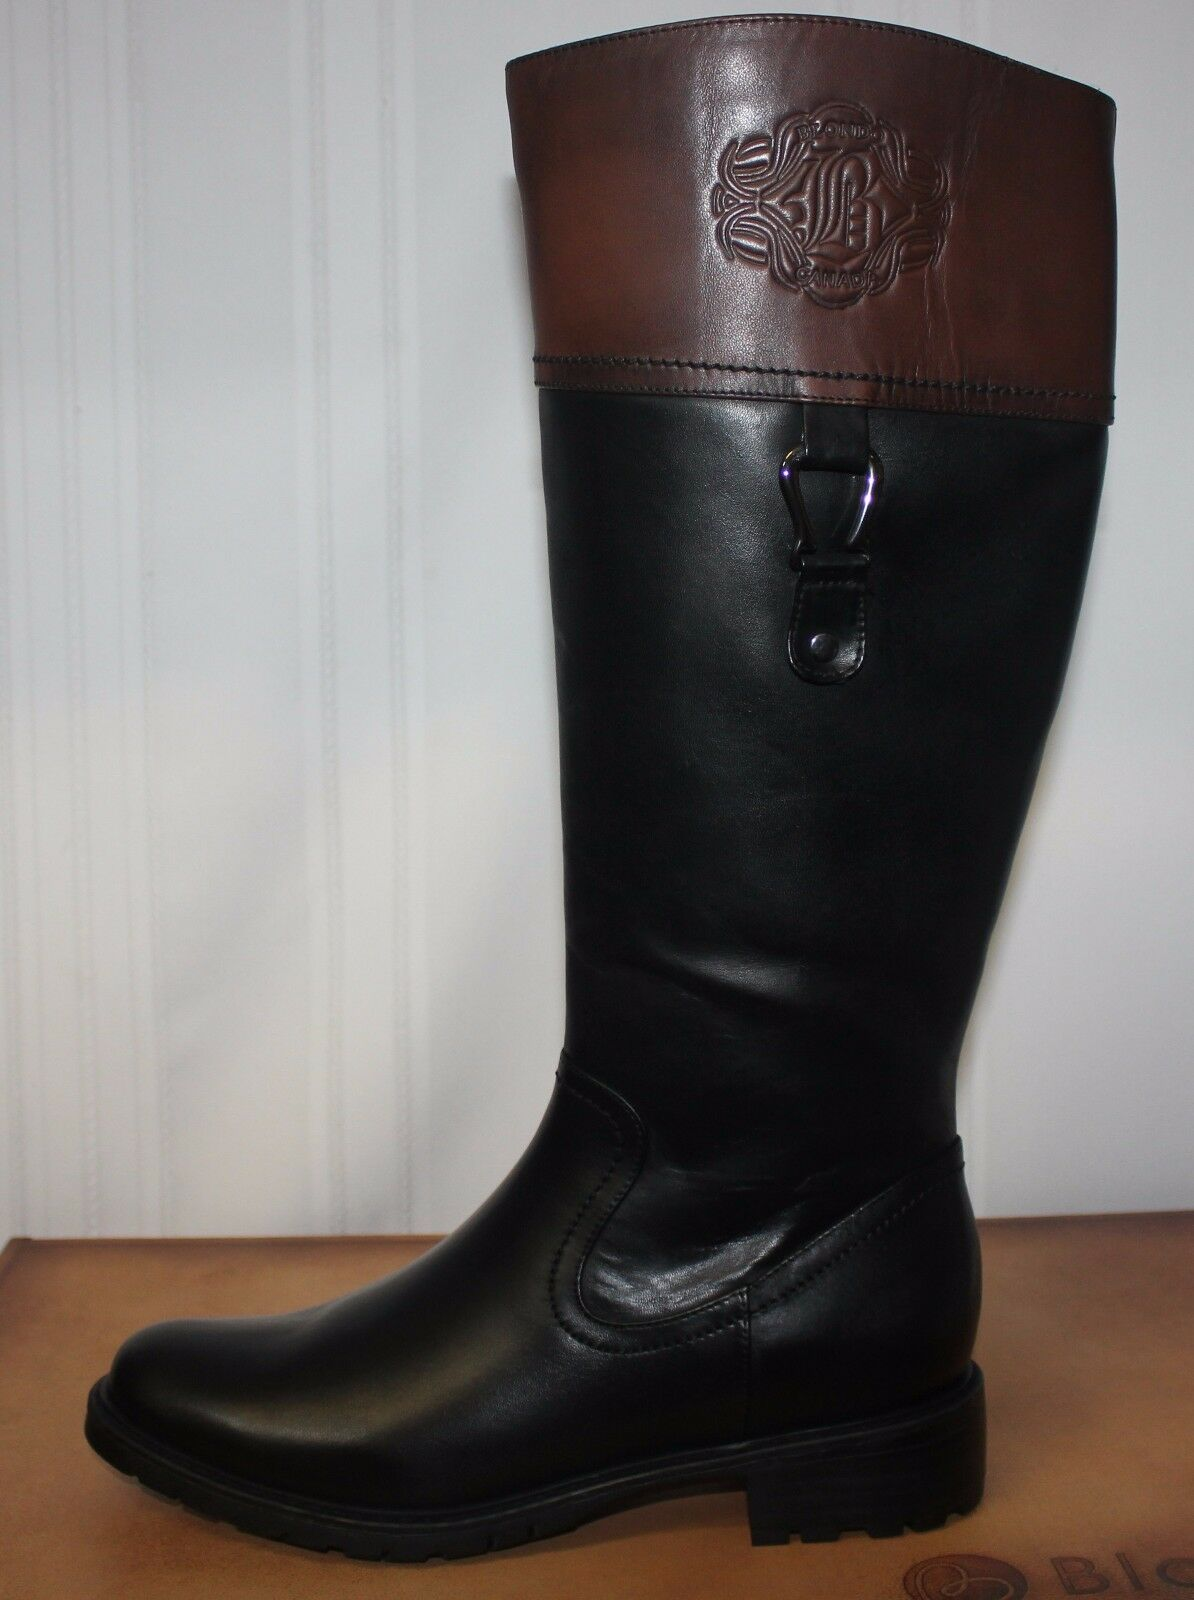 Blondo Women's Vida Boots Waterproof Black   Brown Leather Leather Leather New 3294ff